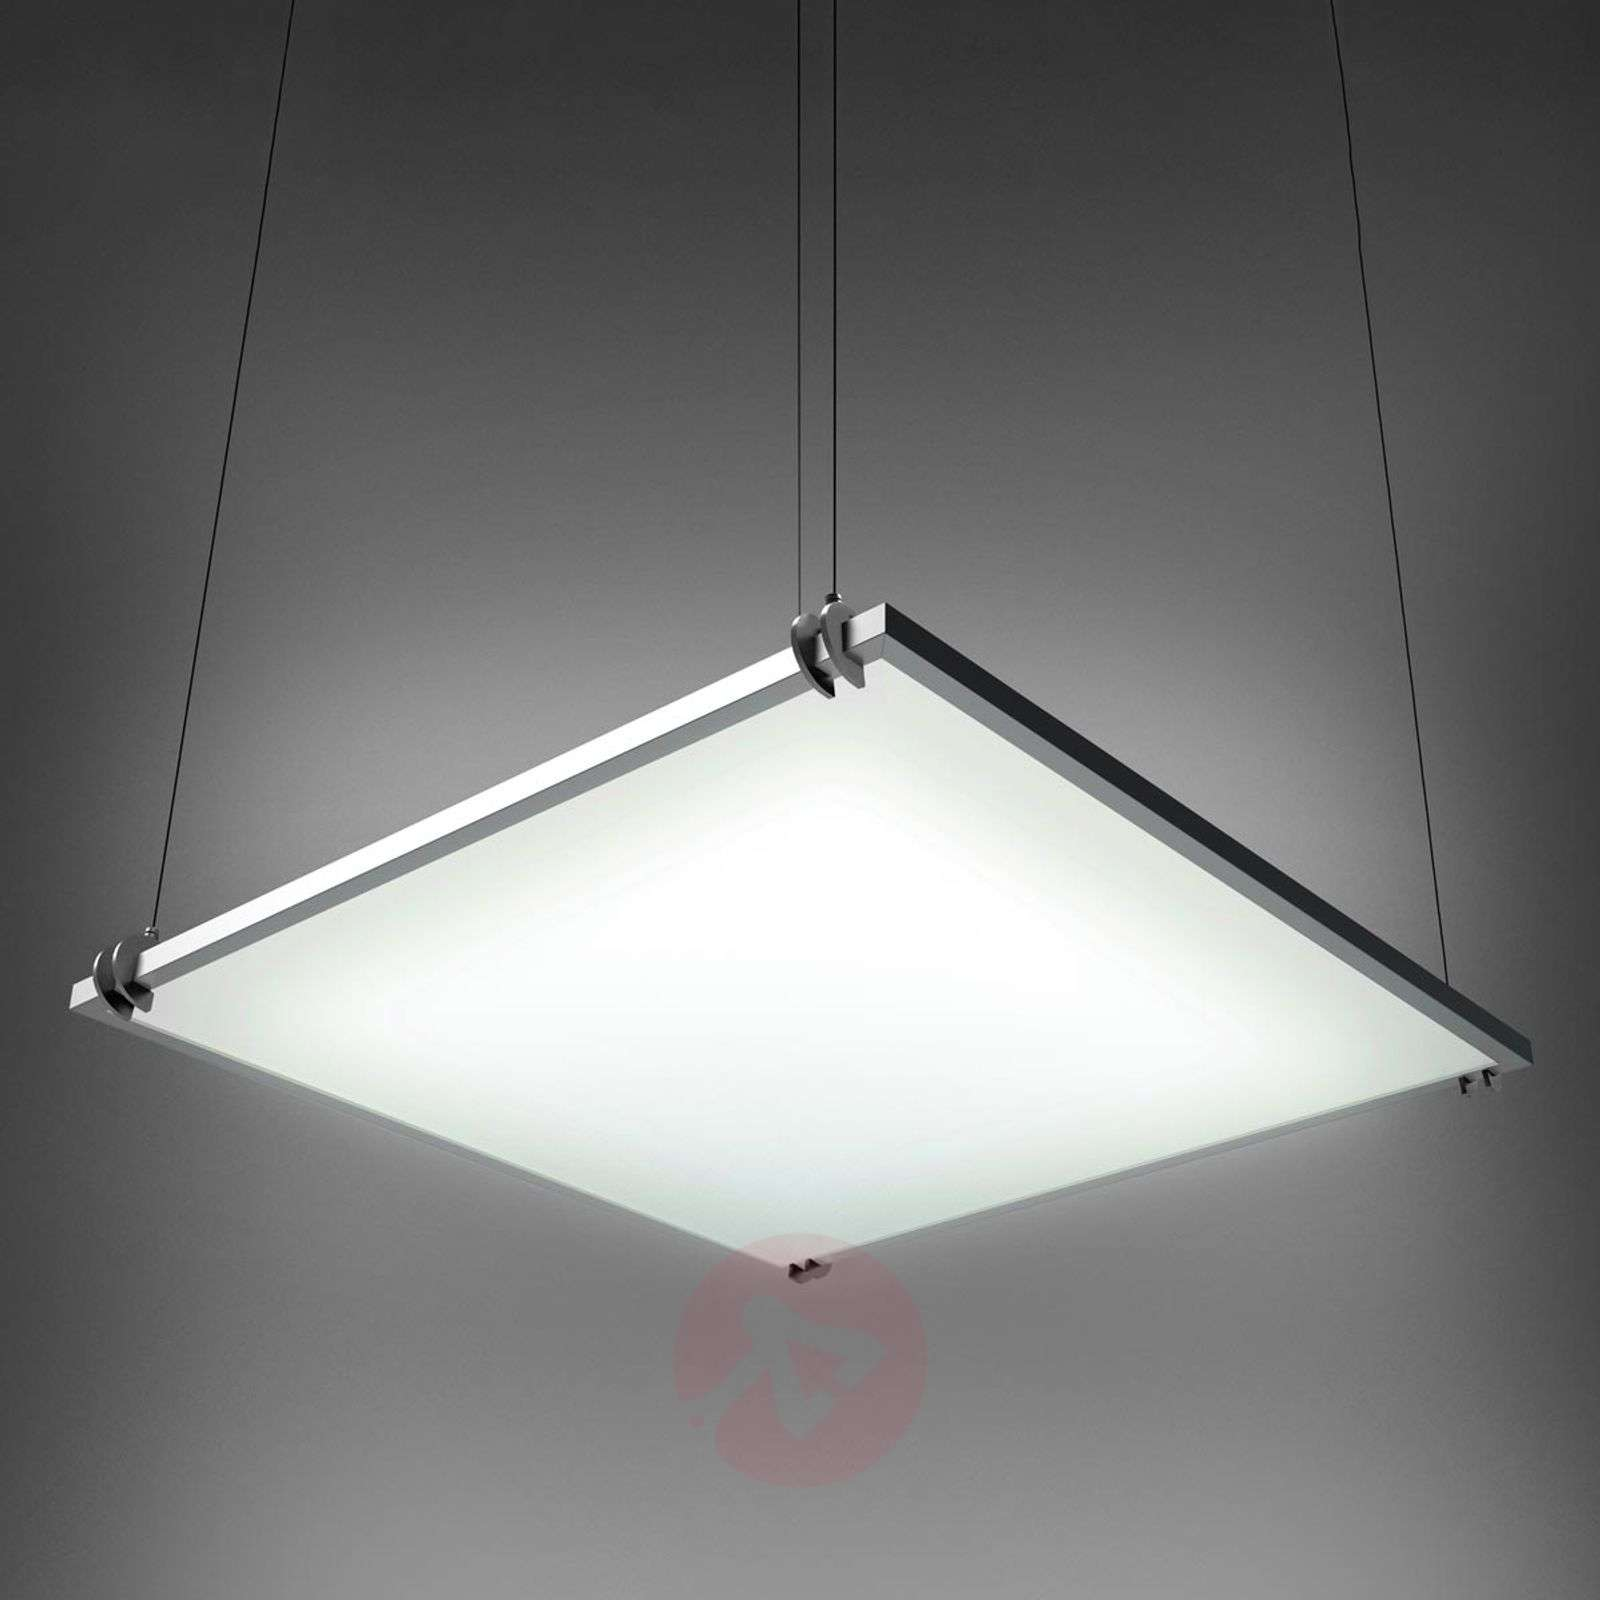 Compra l mpara colgante led de dise o grafa for Lamparas led diseno